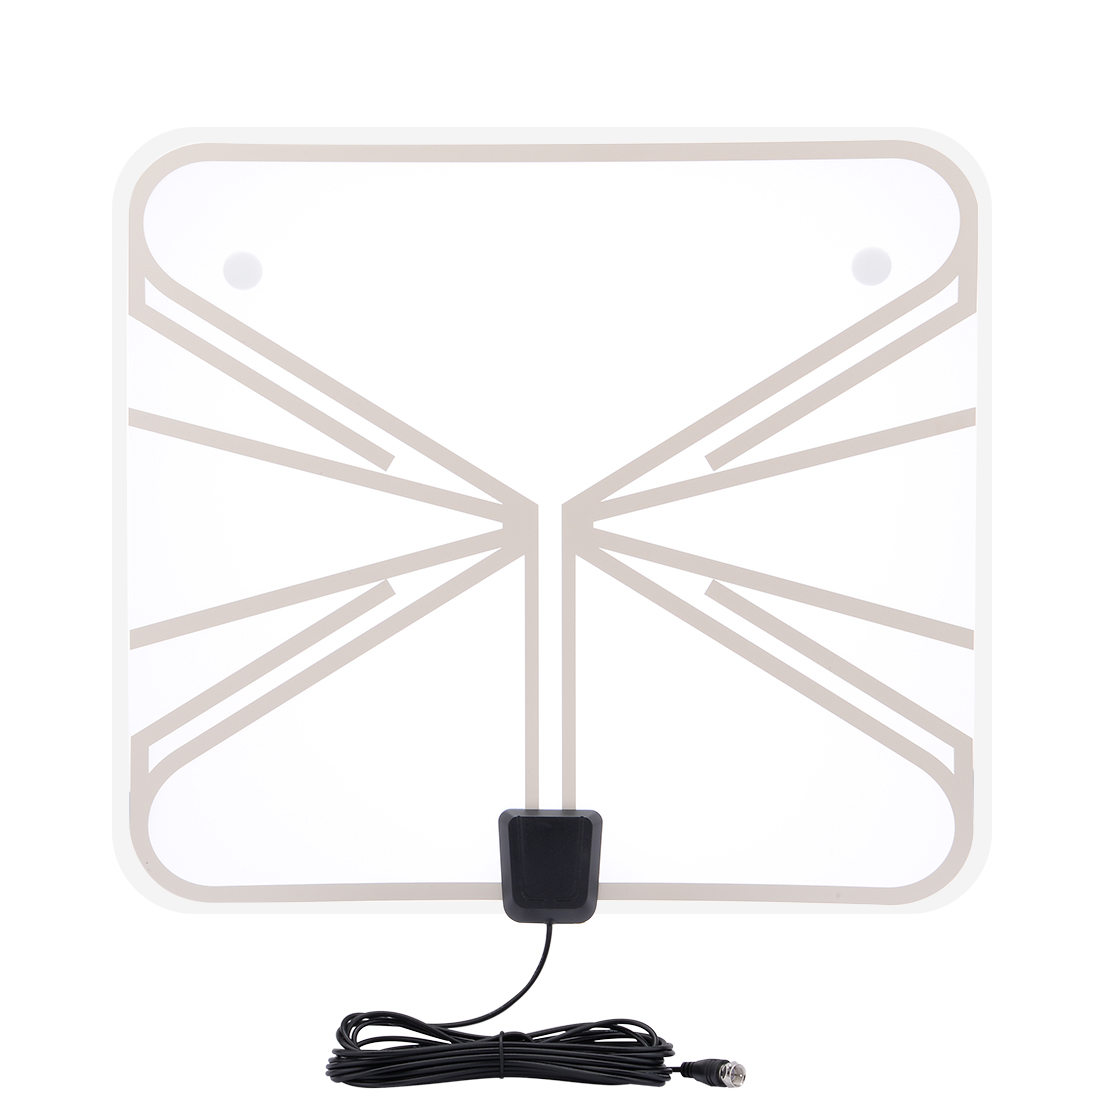 35 Mile Range Indoor Home Amplified HDTV Antenna with 16 FT Long Cable